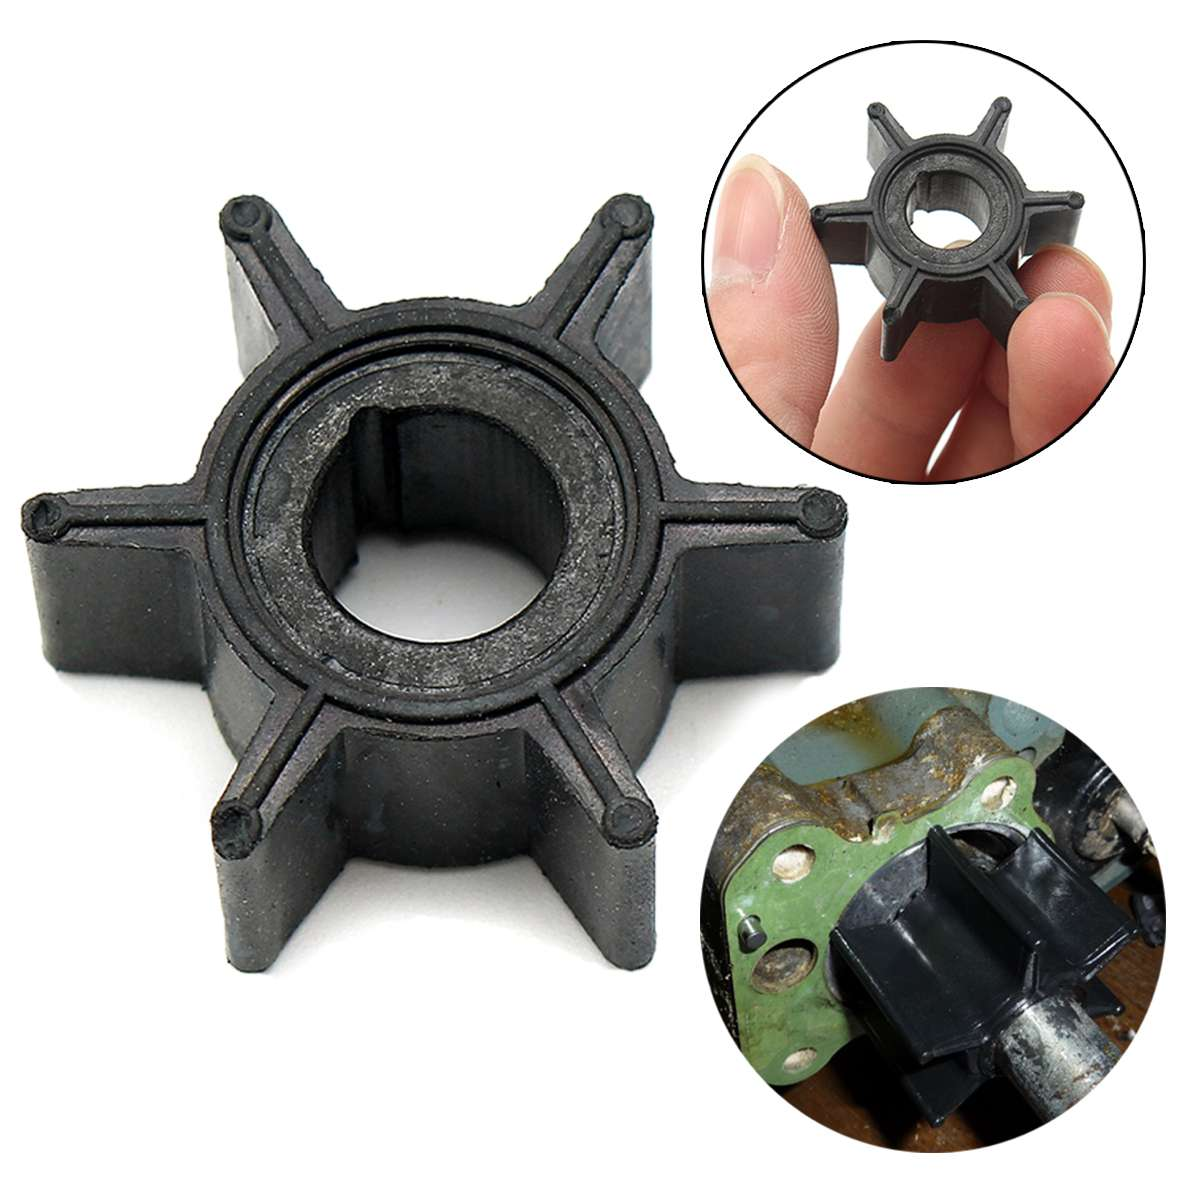 HOT SALE] Boat Motor 369 65021 Impeller for Tohatsu 3 5 5HP